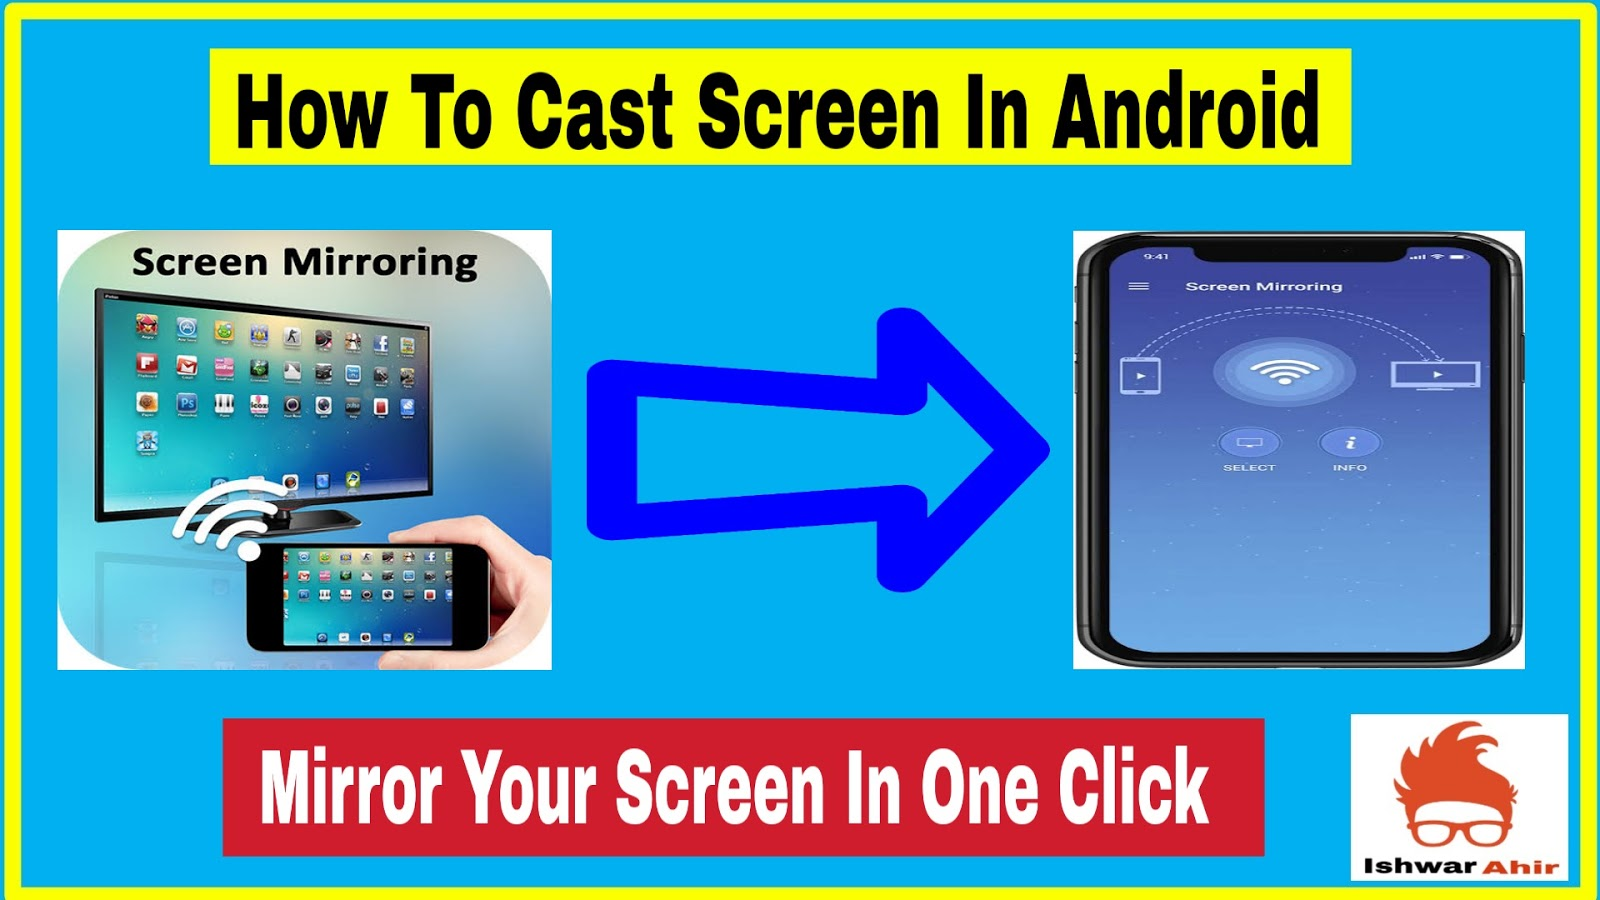 How to Cast Screen in Android